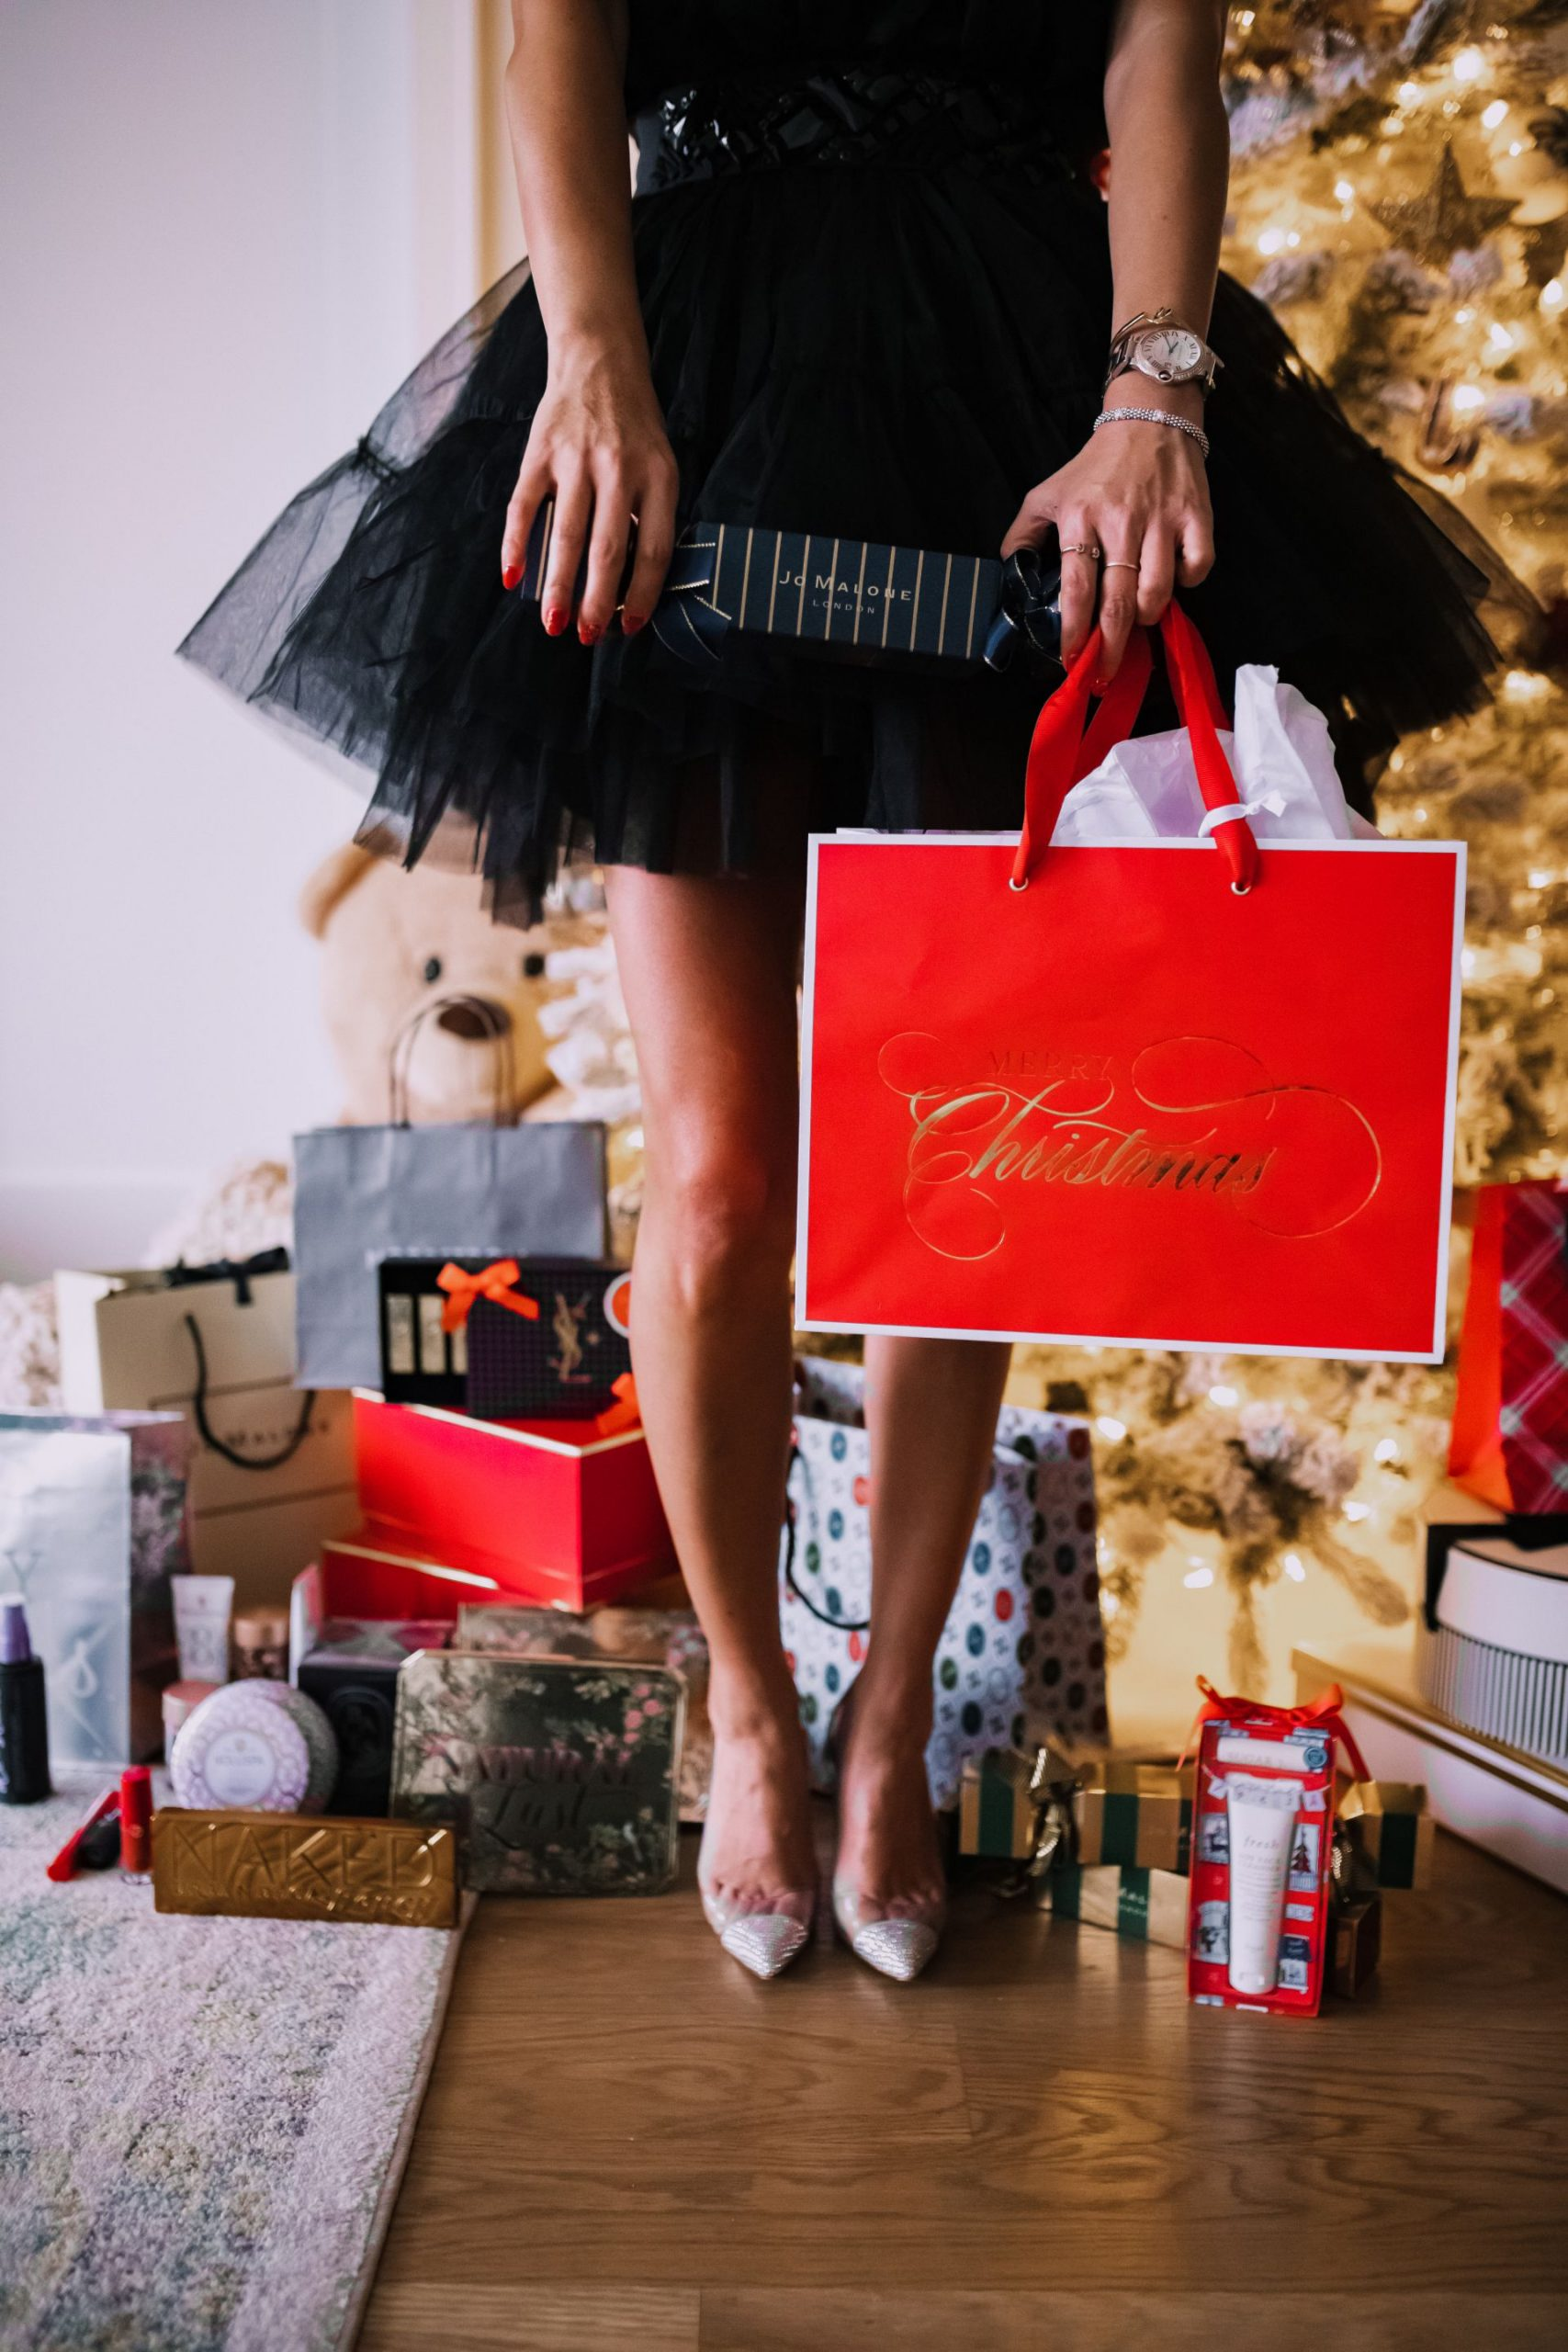 best beauty gifts from nordstrom, holiday beauty gifts from nordstrom under $100, beauty gift guide, best beauty gifts, gifts for the beauty lover, holiday gifts for the beauty lover, gifts for mom, gifts for her, gift guide for her, holiday gift ideas, gift ideas under $100, best gifts under $100, holiday decor, cute holiday decor, Jennifer Worman, Red Soles and Red Wnie